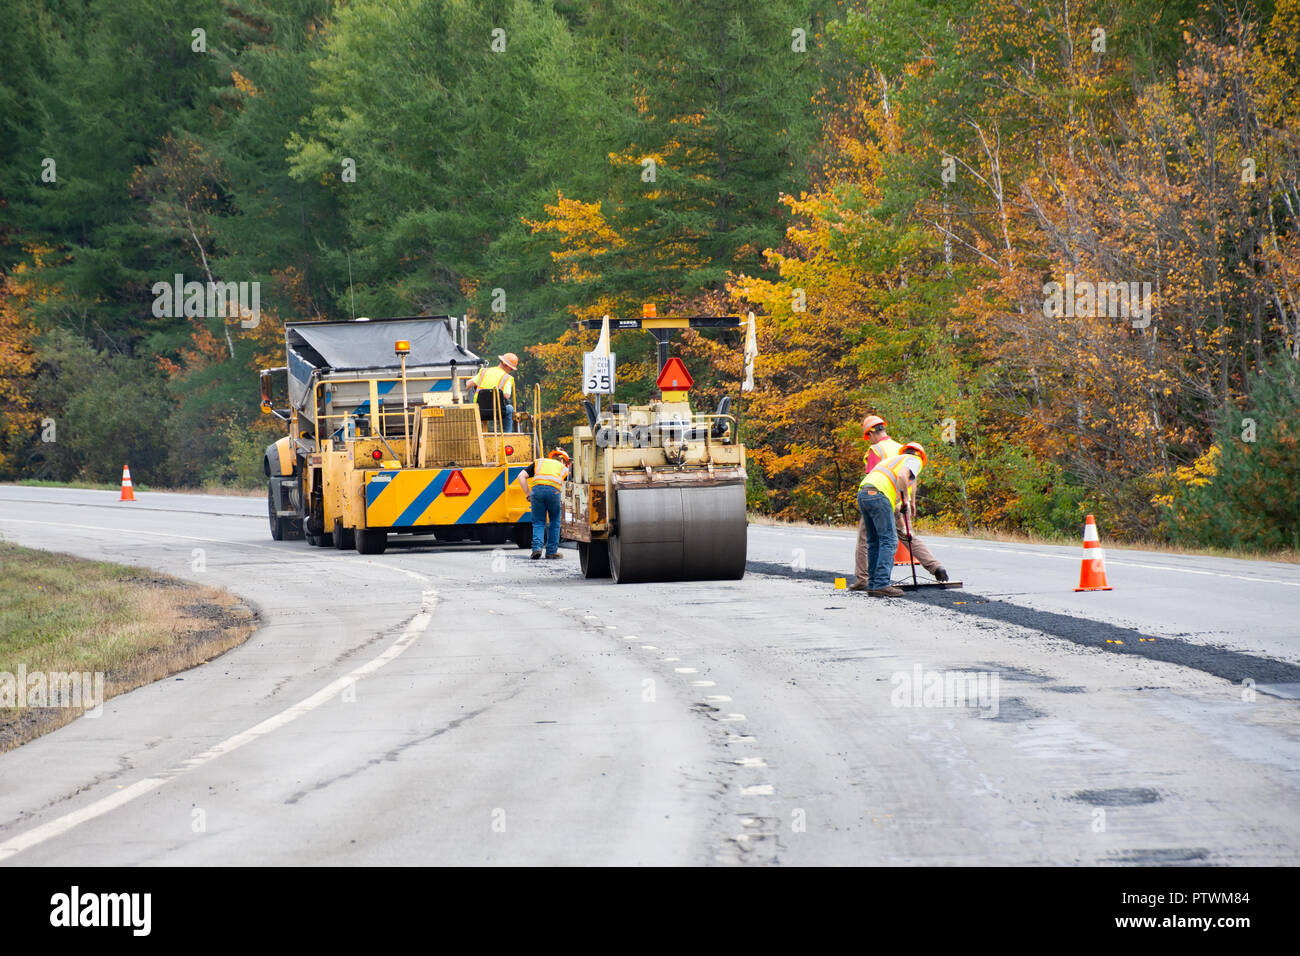 A road maintenance project in the Adirondack Mountains, NY USA with a dump truck, a paving machine, a roller and a construction crew. - Stock Image